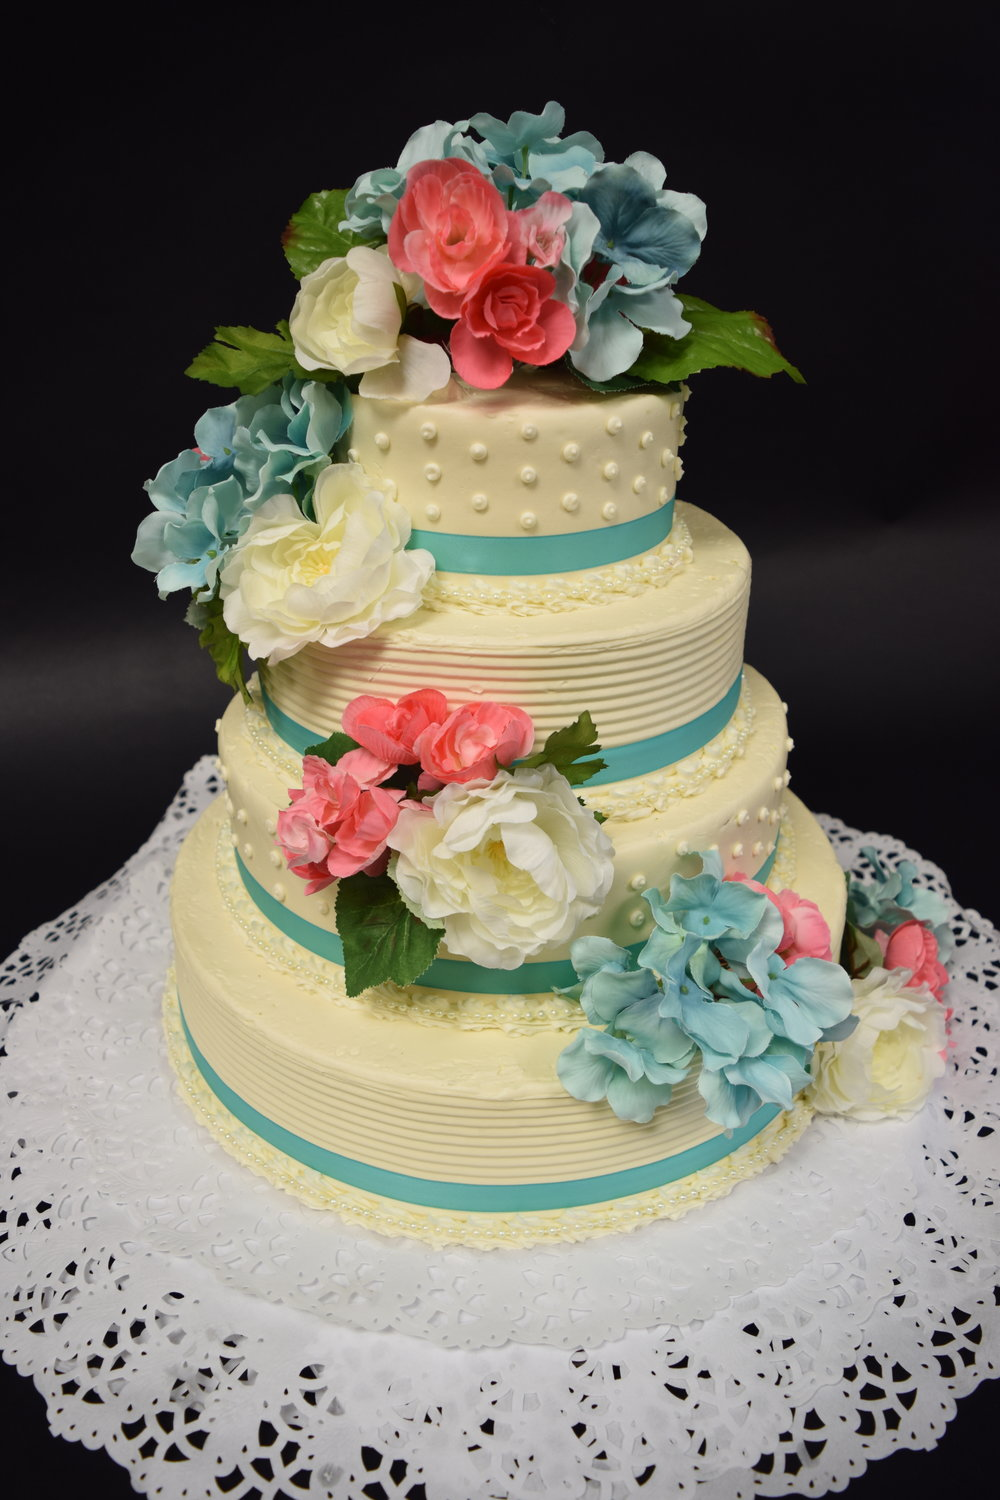 Wedding cakes — Gruttadaurias Bakery